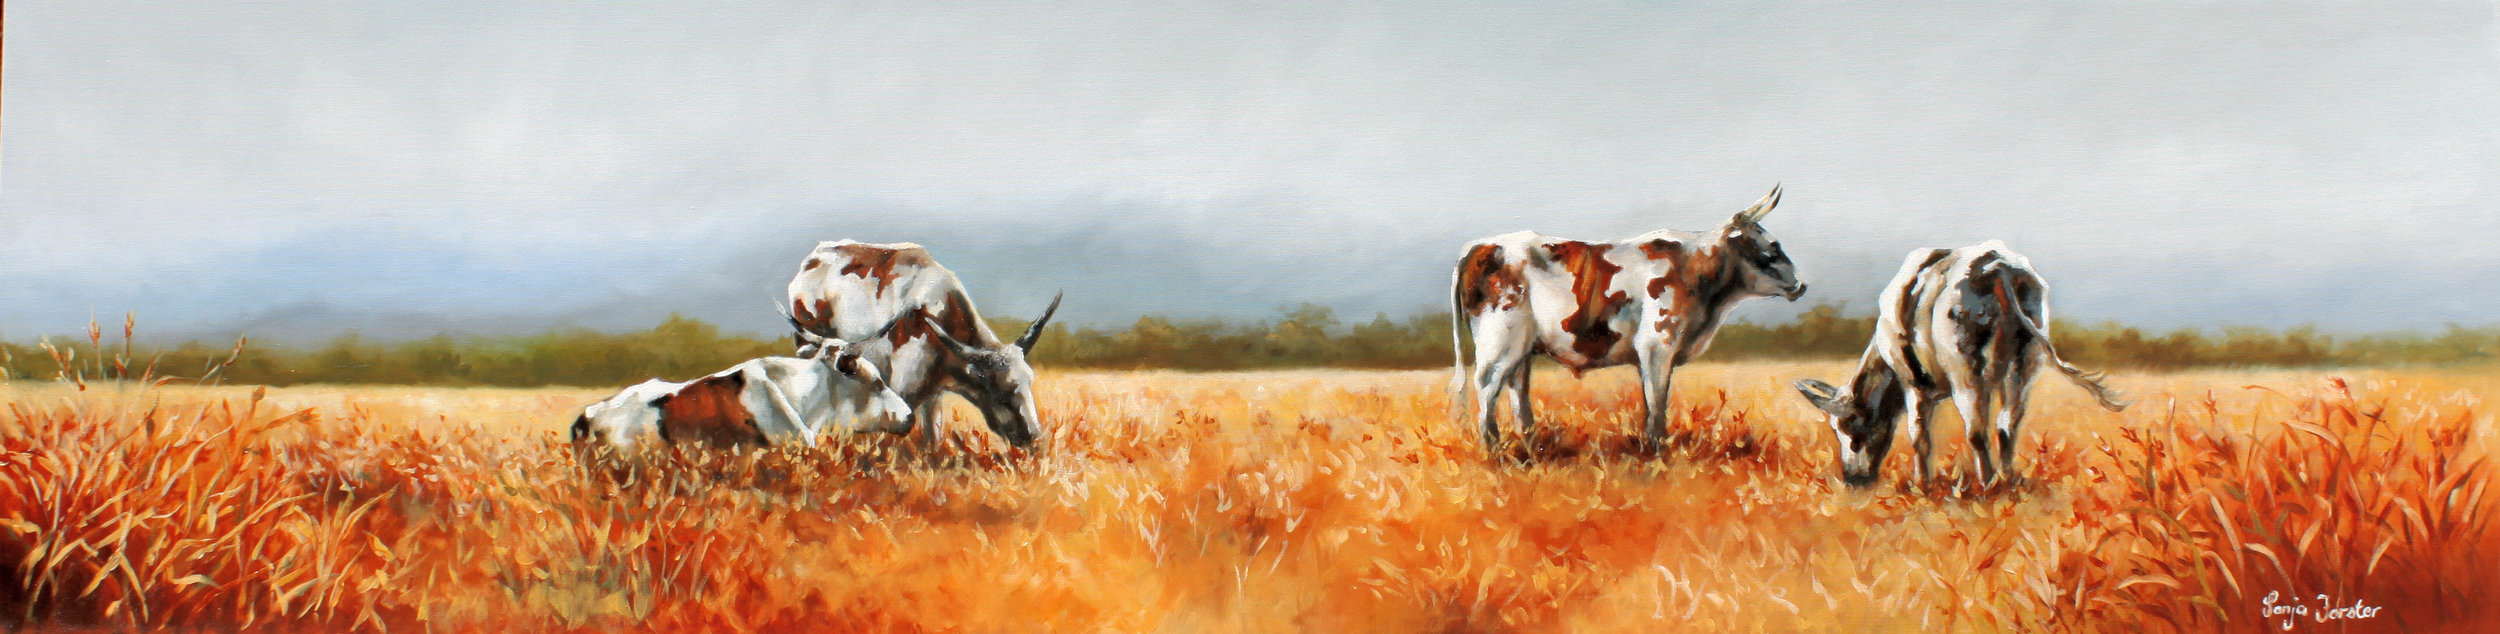 "Ngunis in the veld | Oil on Canvas | 80""x20"" 